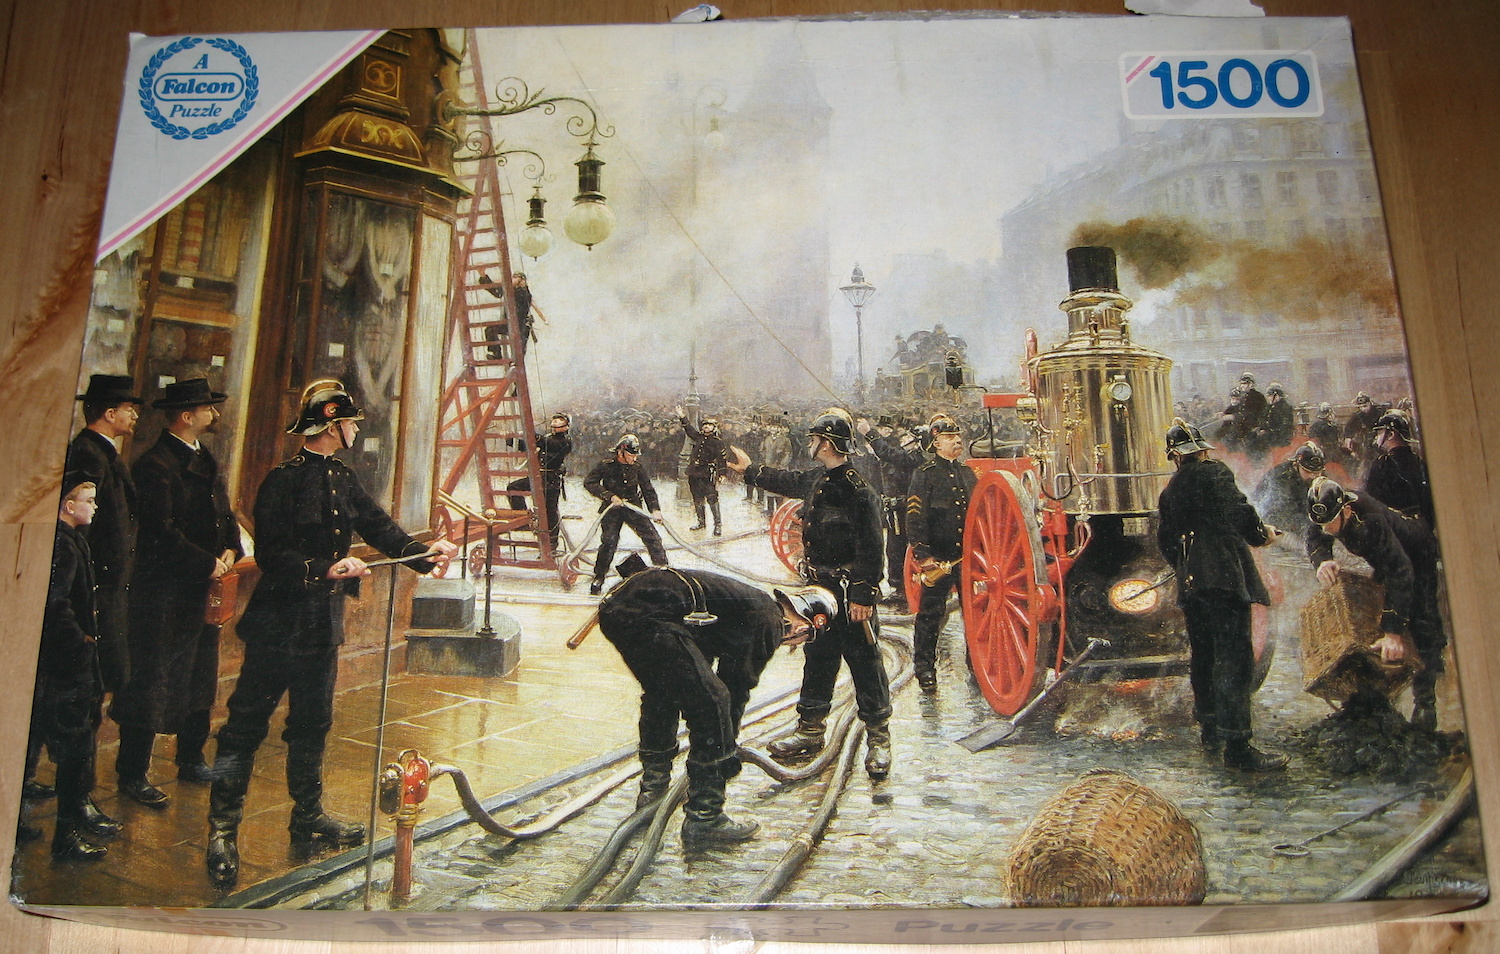 Image of the Puzzle 1500, Falcon, The Fire Brigade Turn Out in Kultorvet, Copenhagen, Picture of the Box